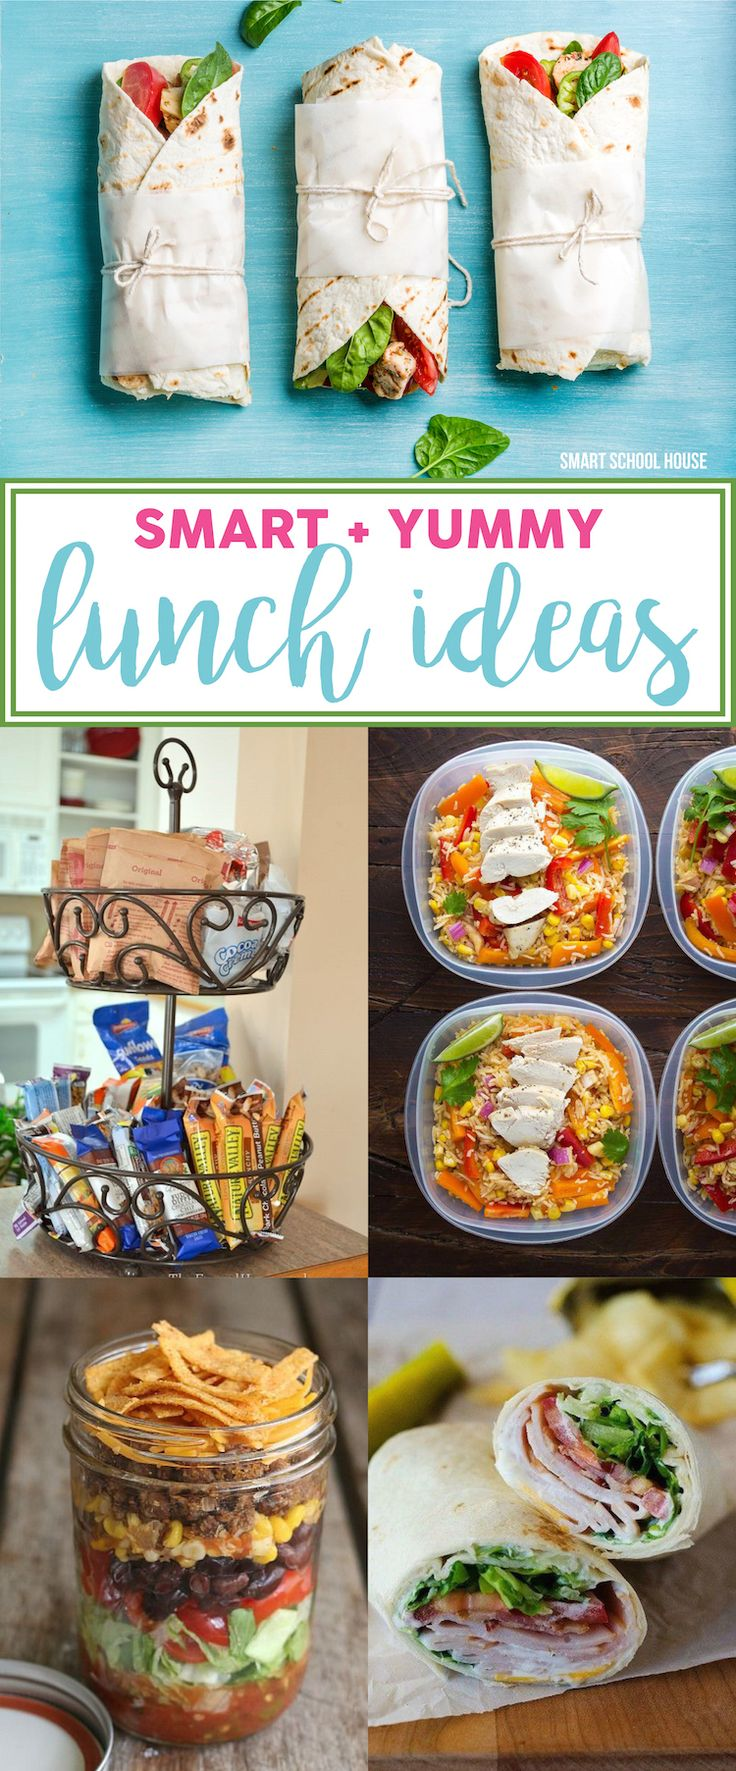 Smart And Yummy Lunch Ideas Recipes For Yourself A Carful Of Kids Or Even If You Stay Home And Have A Toddler To Feed New Ideas Are Always Neat To See